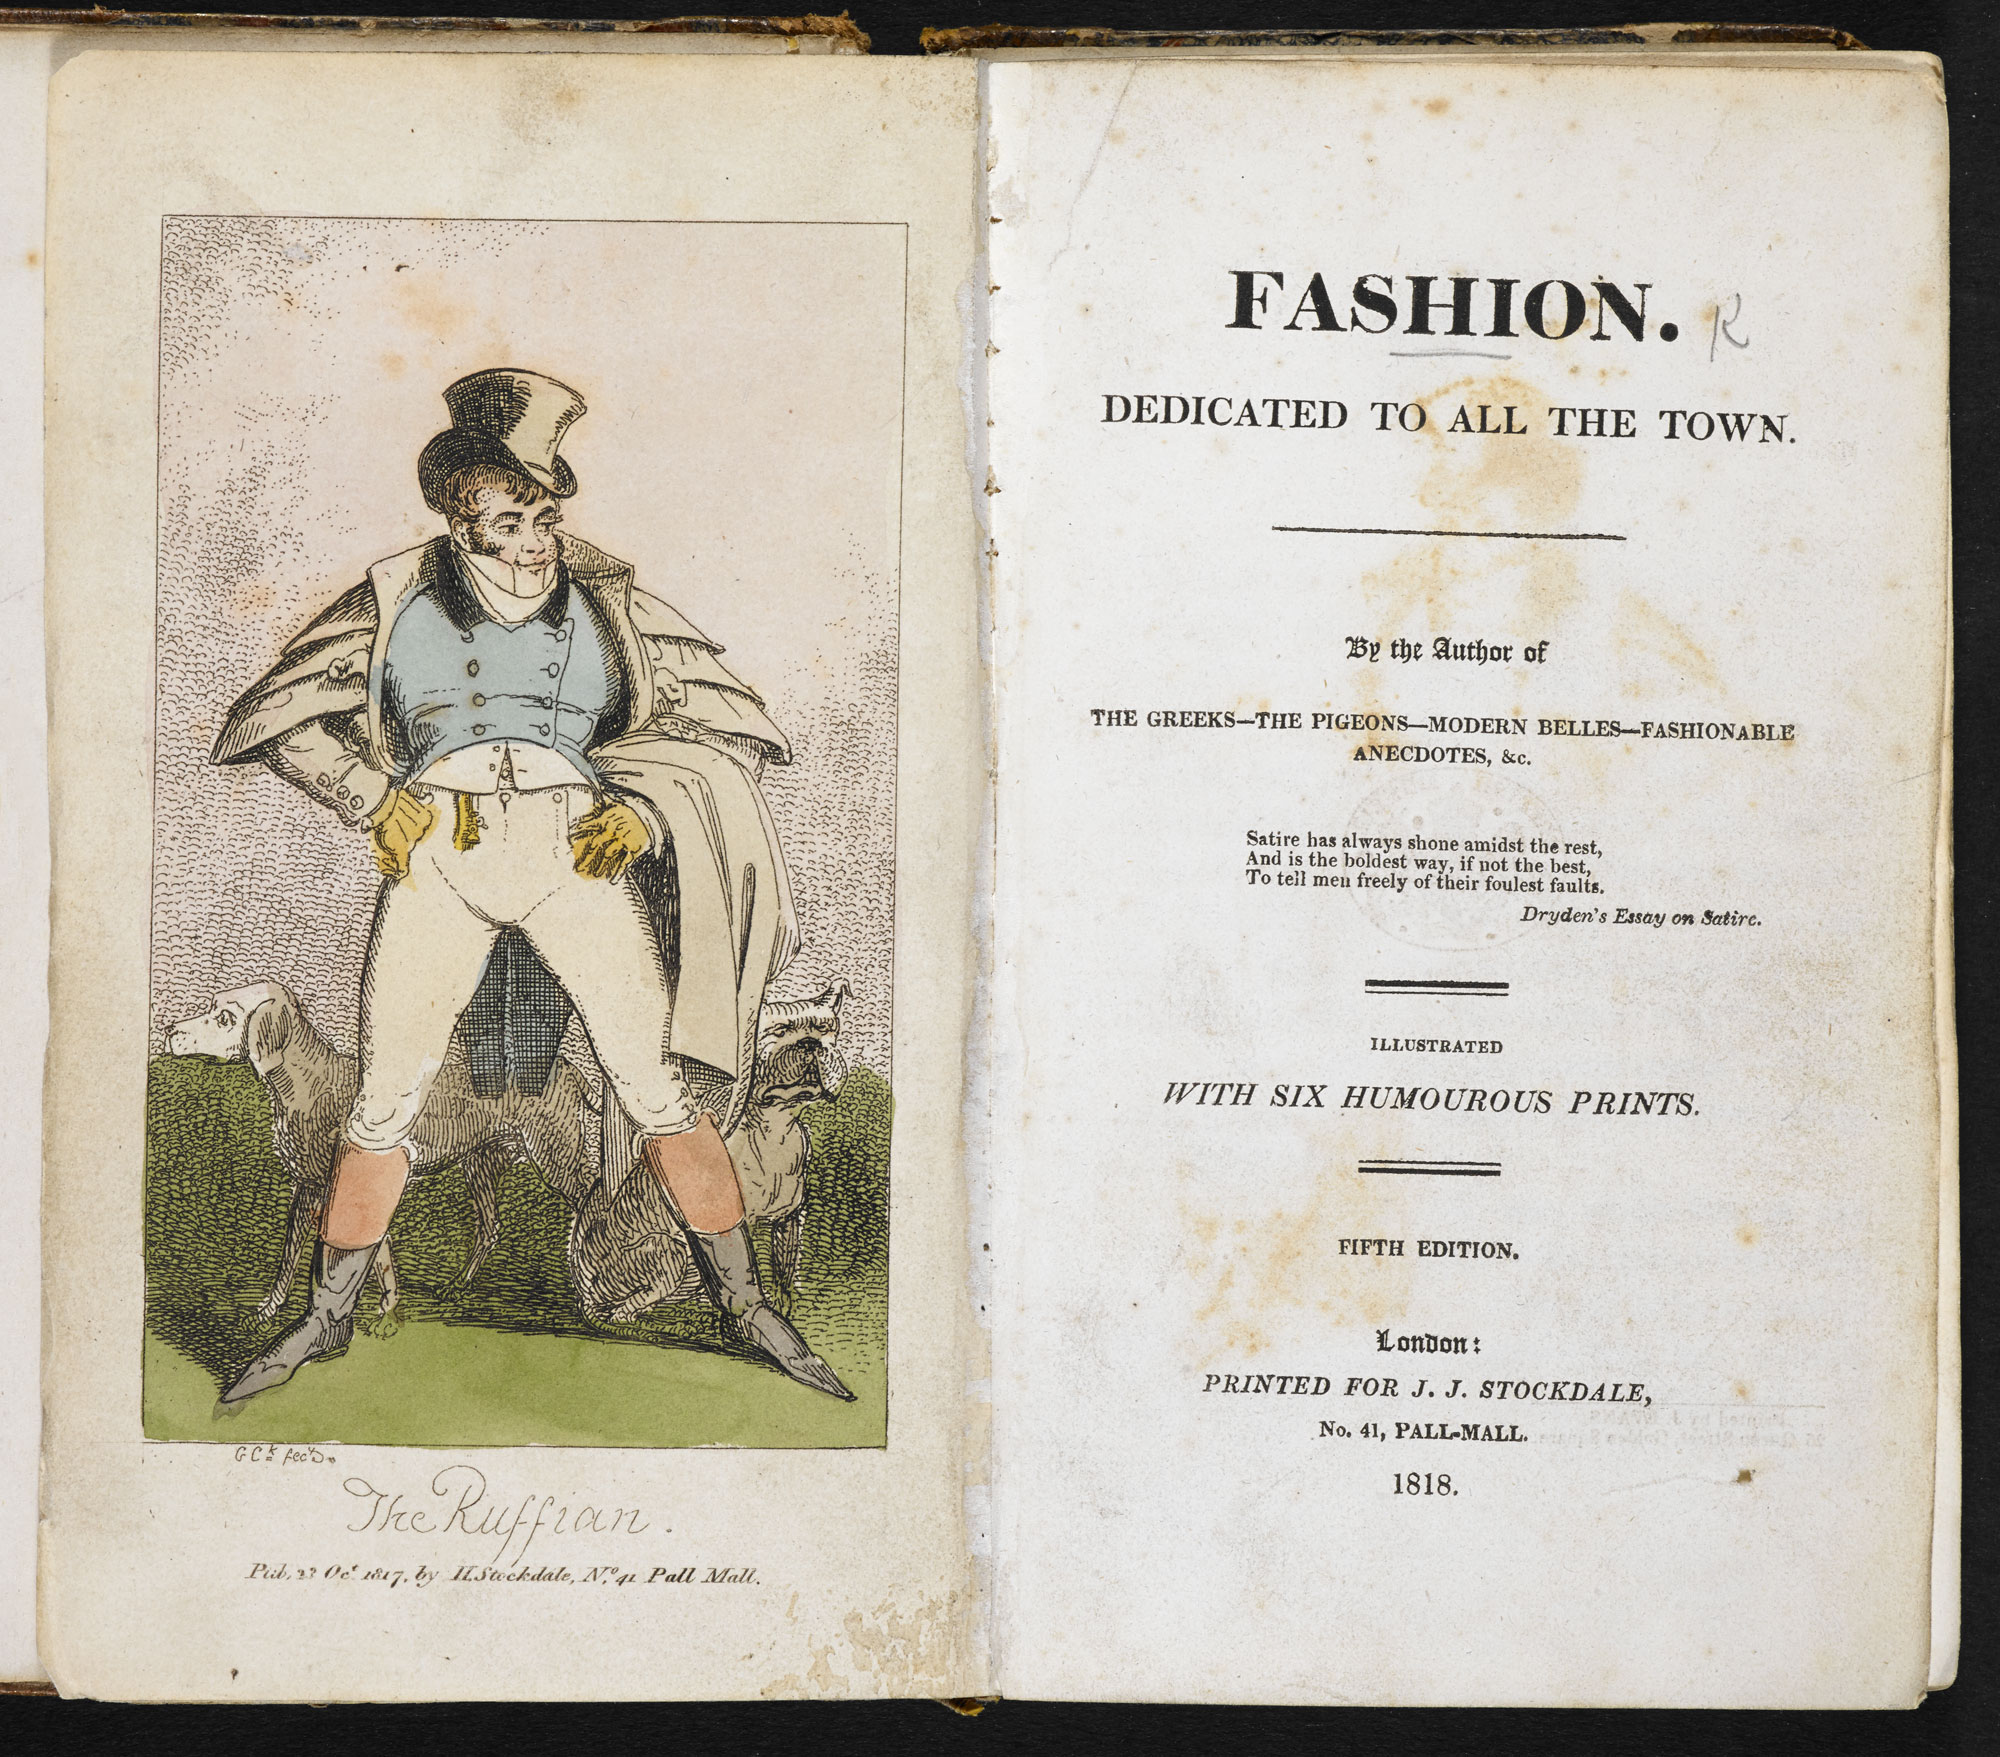 Fashion. Dedicated to All the Town [page: frontispiece and title page]